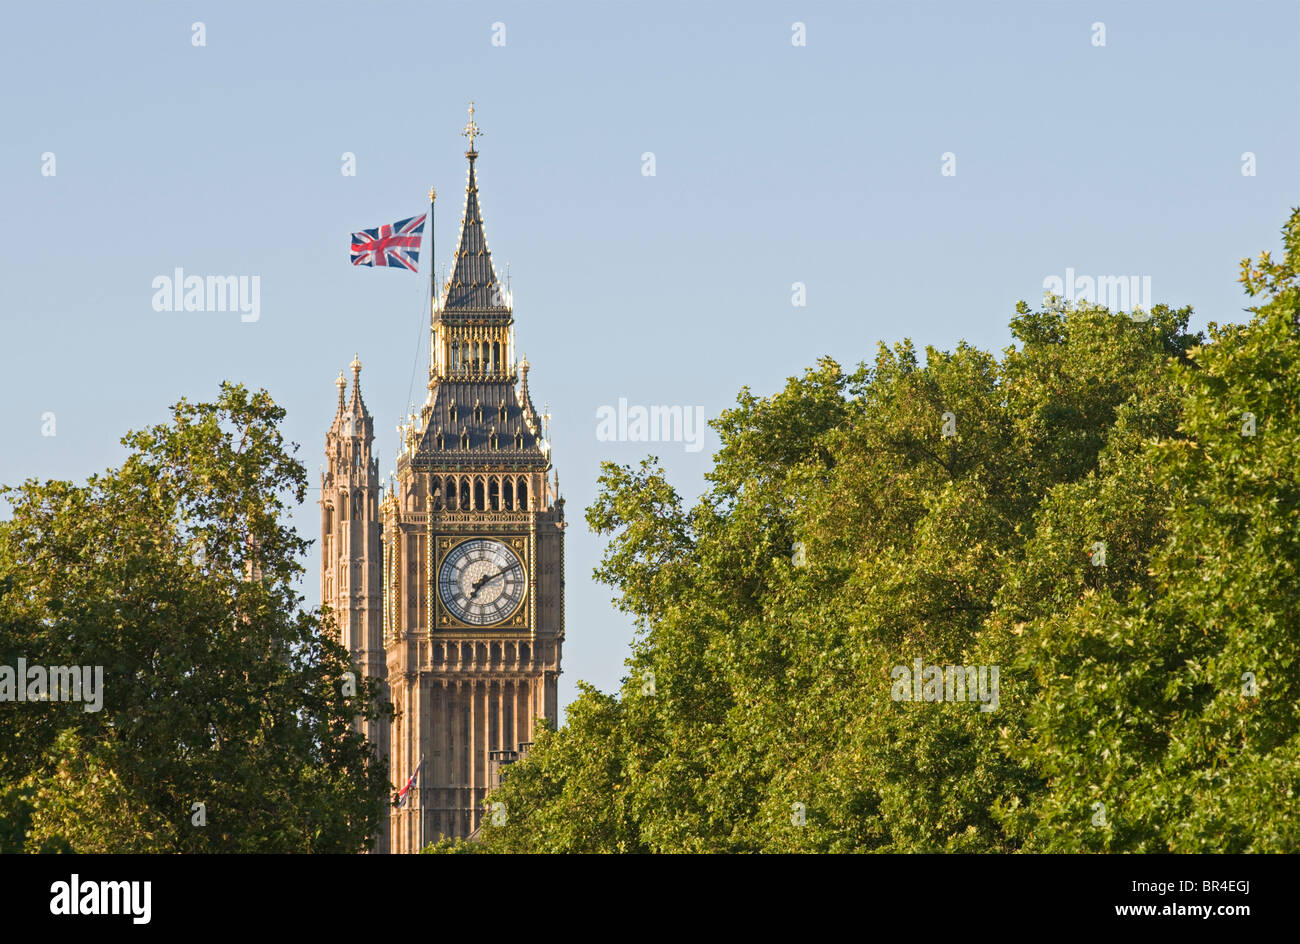 Houses of Parliament, Palace of Westminster clock tower 'Big Ben', London, United Kingdom - Stock Image